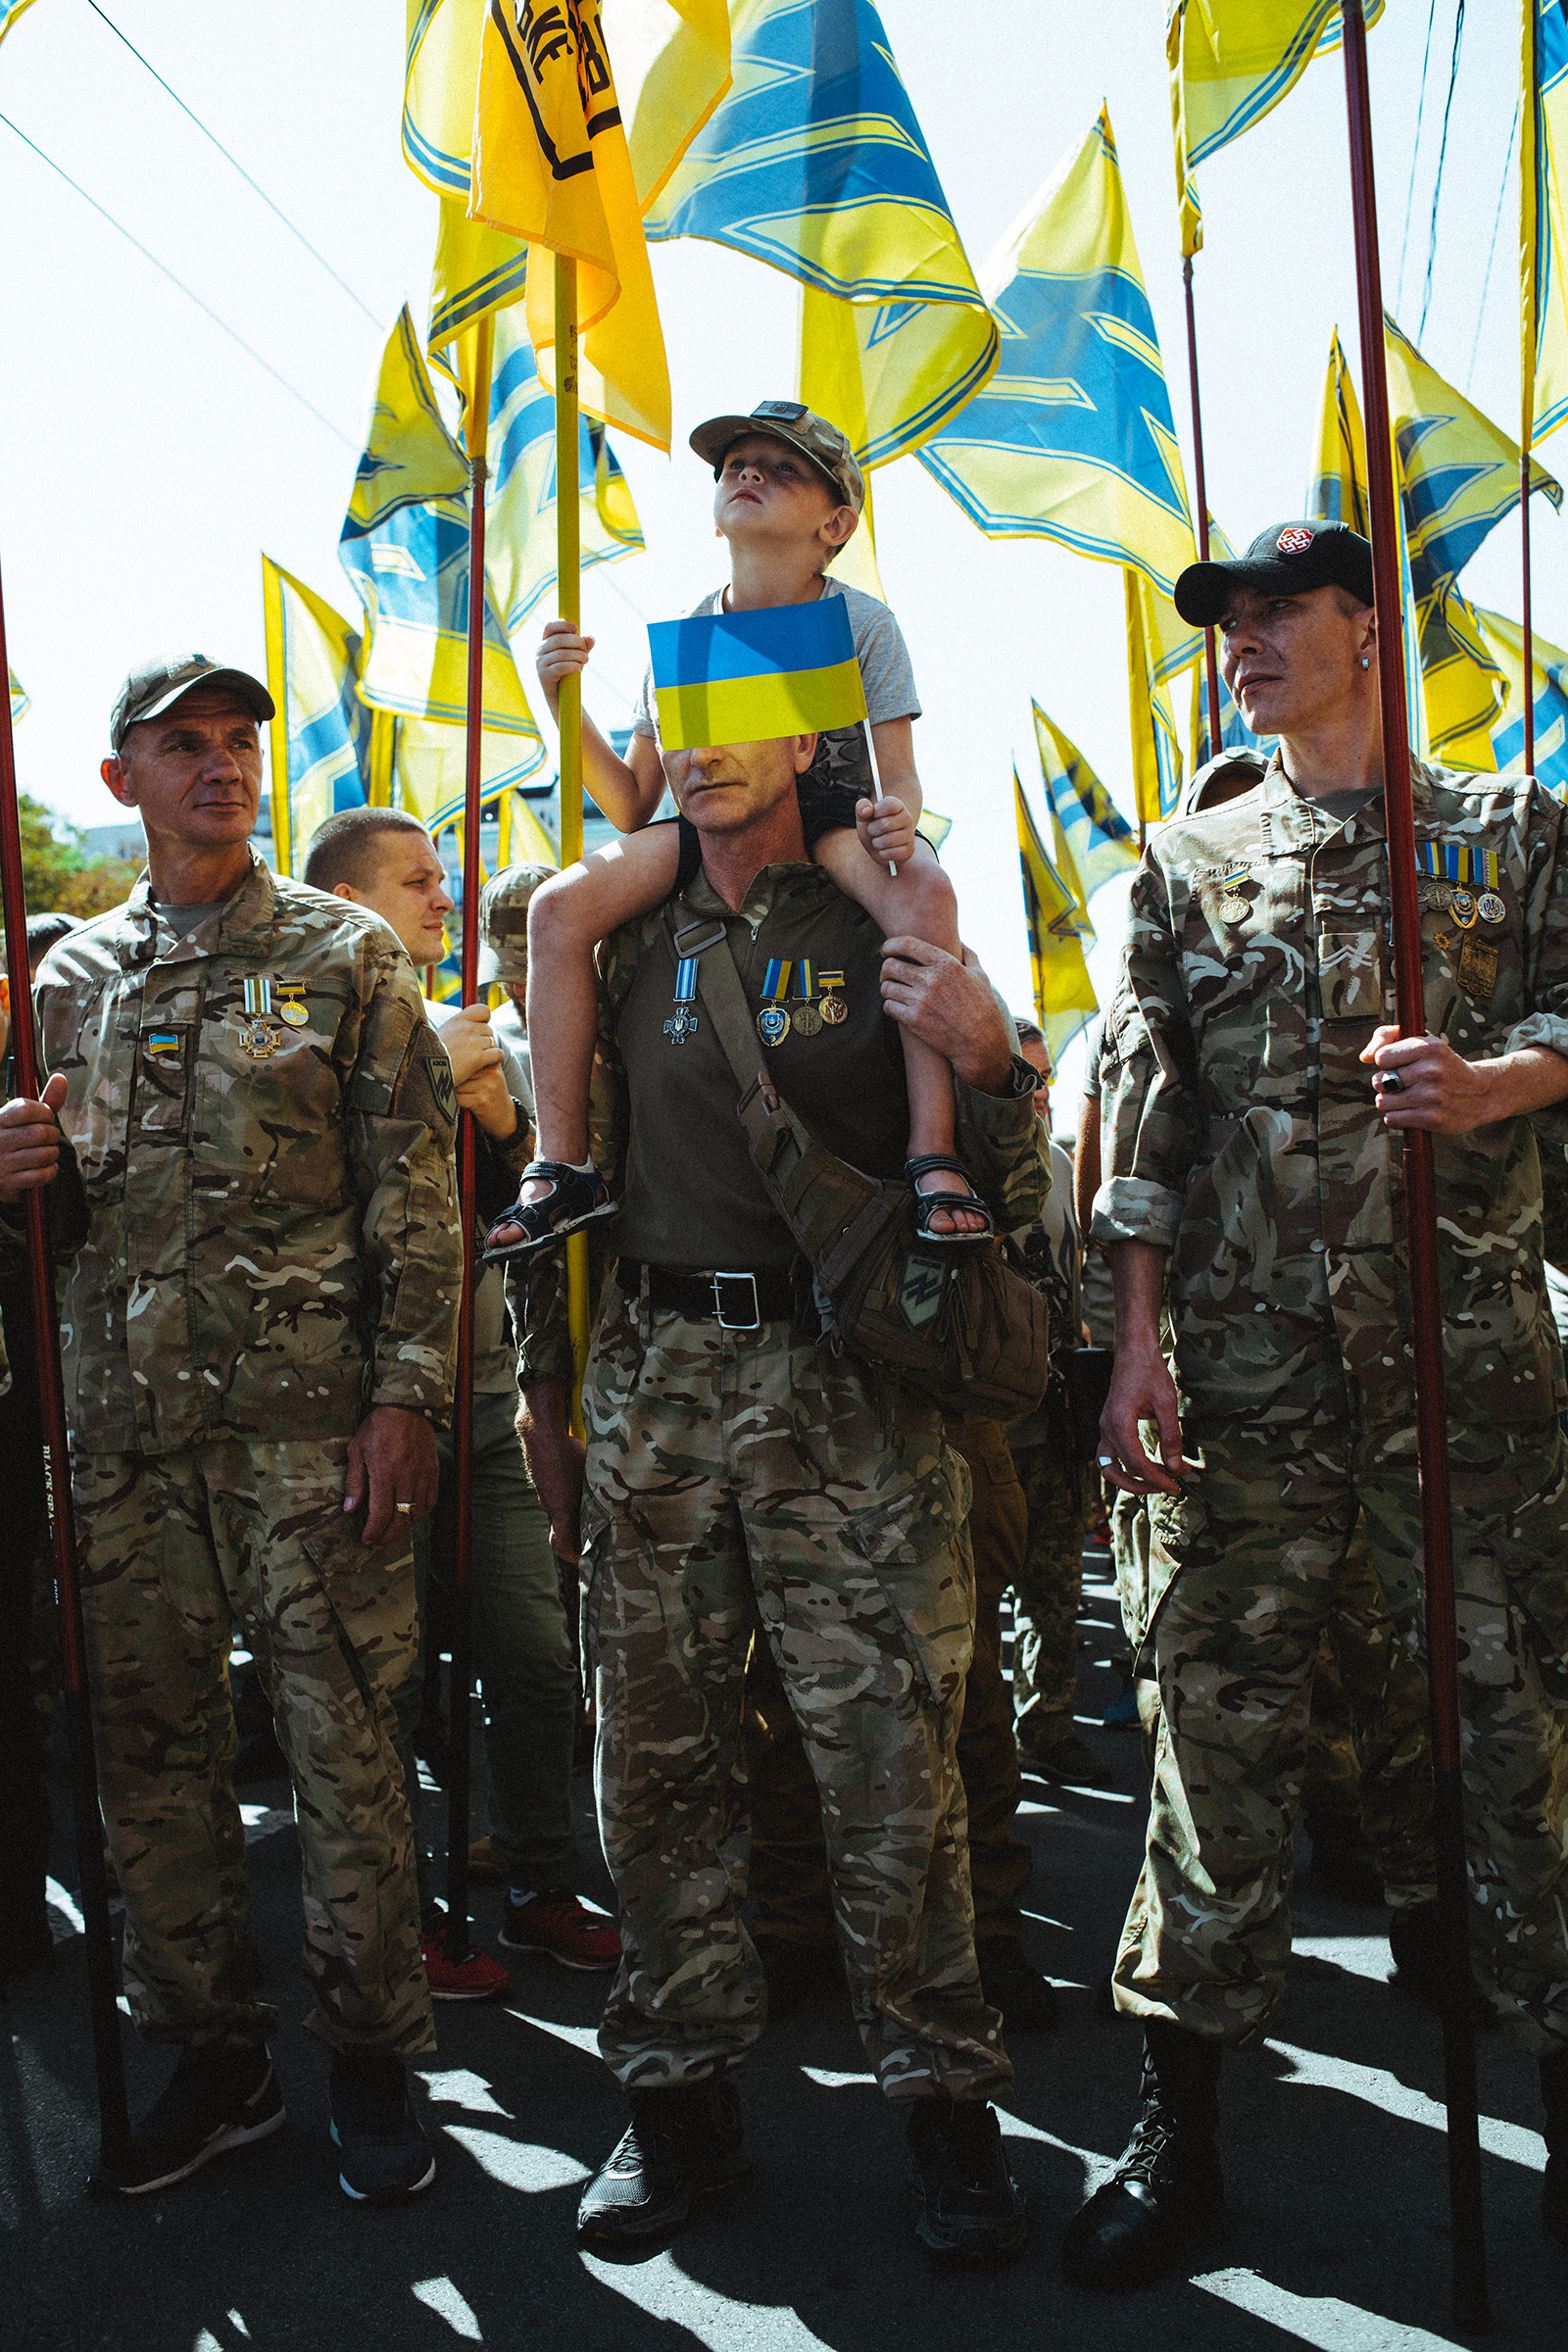 Azov Regiment veterans, whose banners carry an emblem derived from a Nazi symbol, the Wolfsangel, march in Kyiv in 2019.